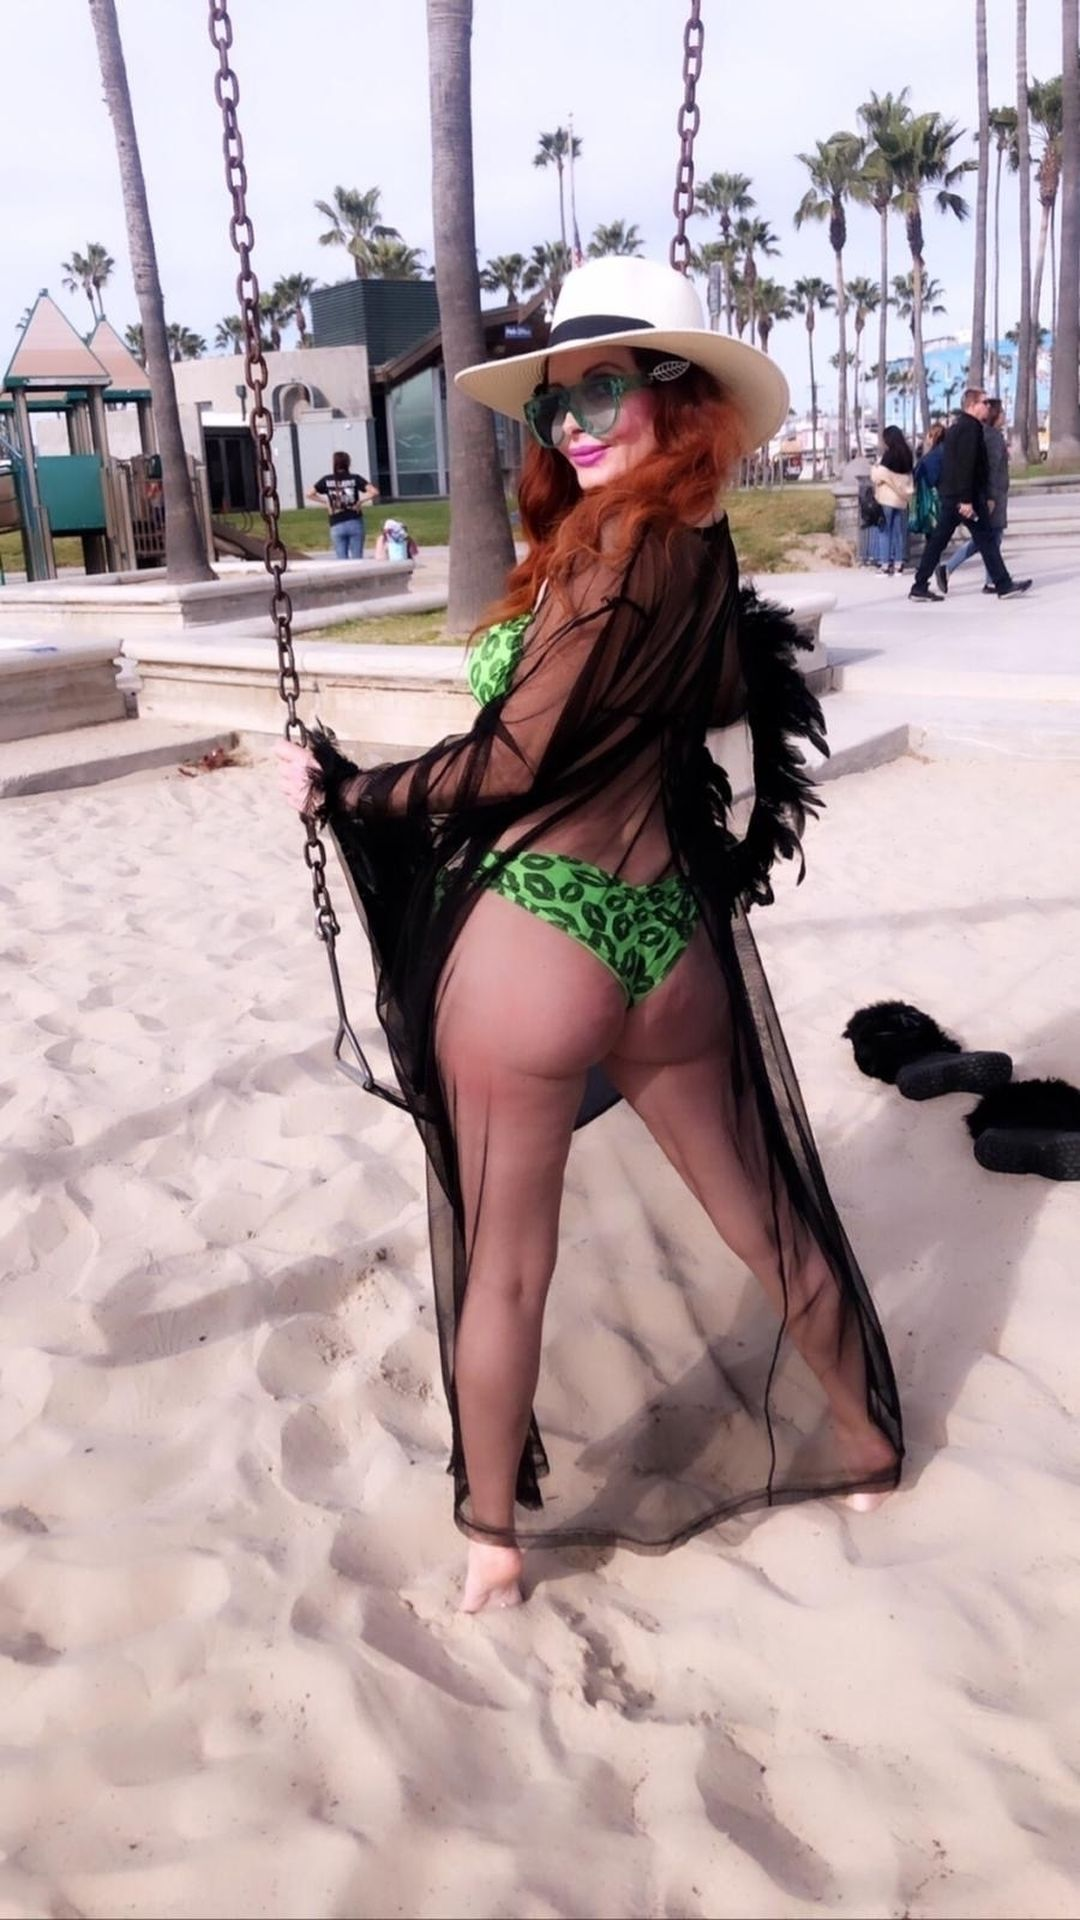 Phoebe Price Shows Off Her Curves In Venice Beach 0030